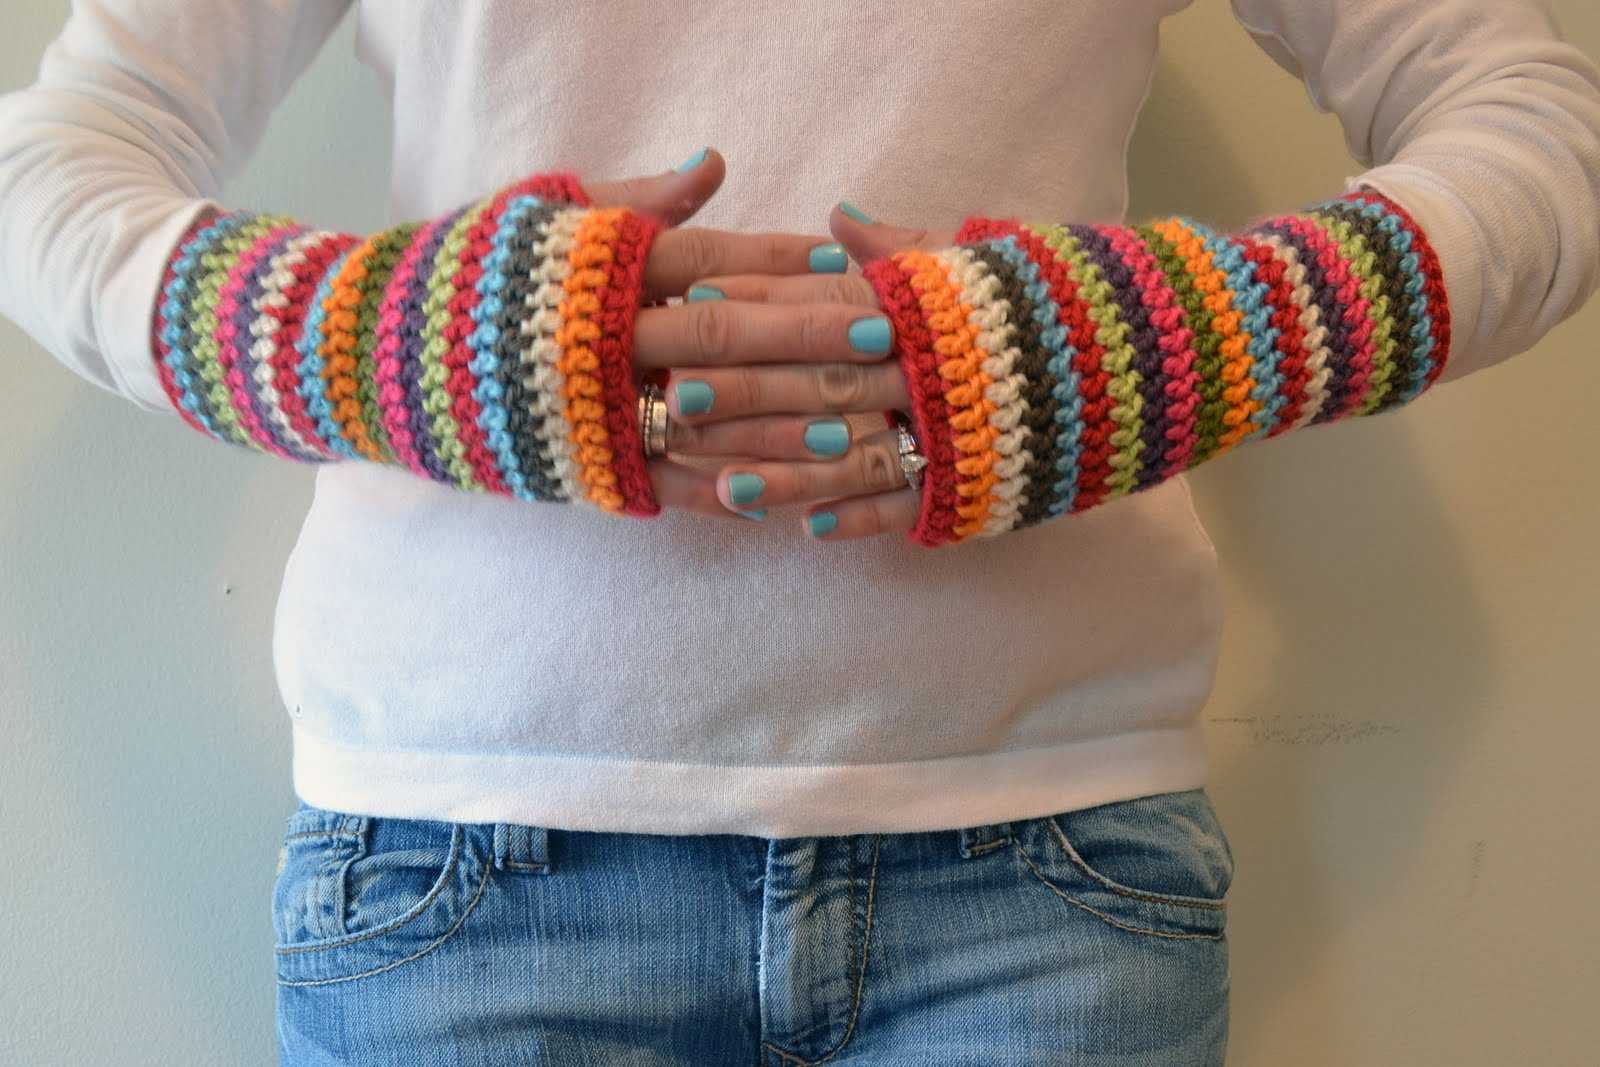 Free Crochet Patterns For Fingerless Gloves And Mitts : Crochet in Color: Colorful Stripey Fingerless Mitts